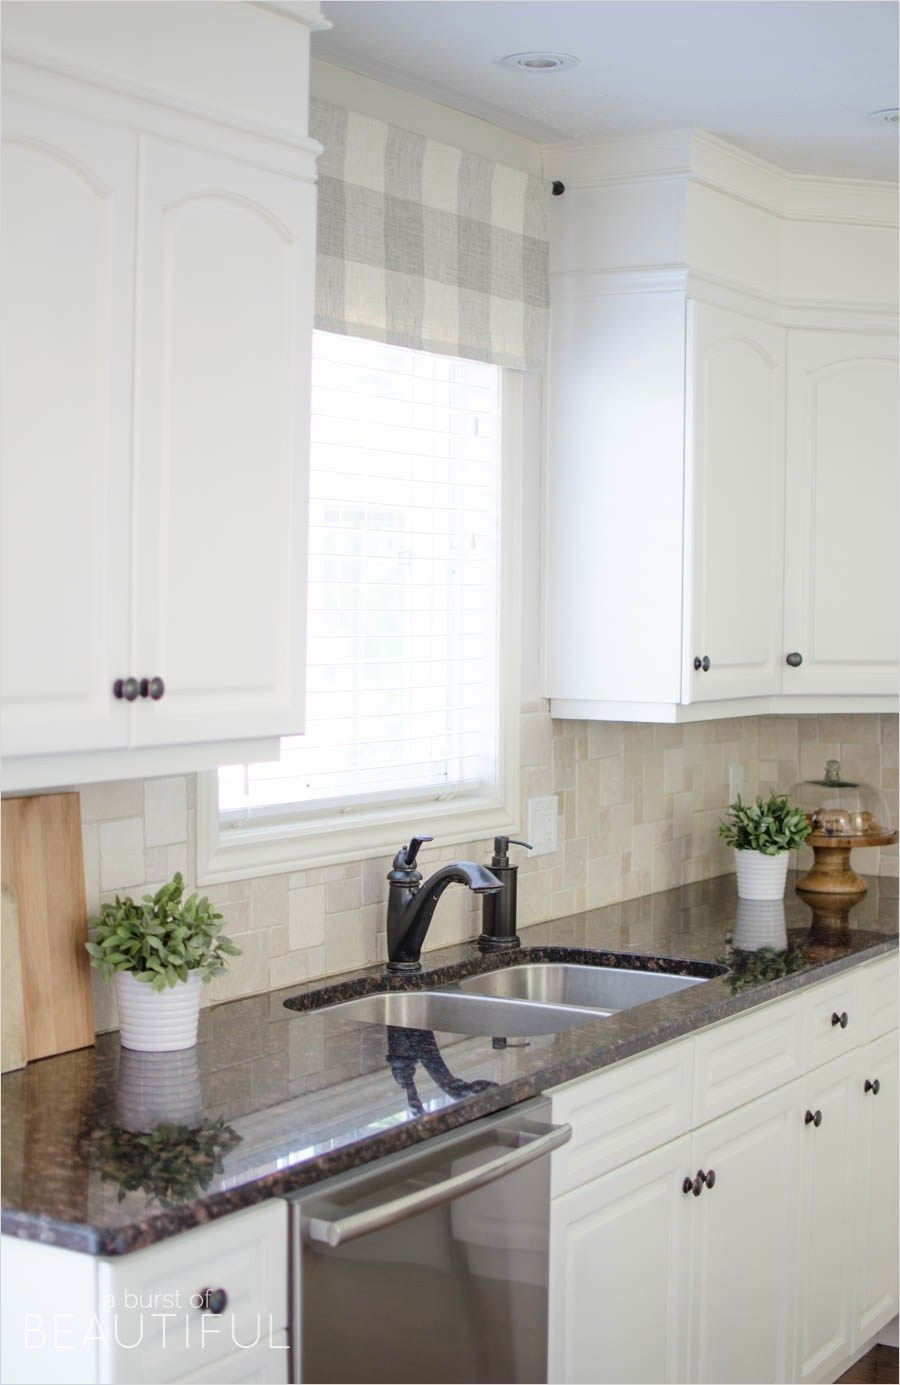 41 perfect farmhouse country kitchen curtain valances ideas kitchen valances farmhouse on farmhouse kitchen valance ideas id=26363